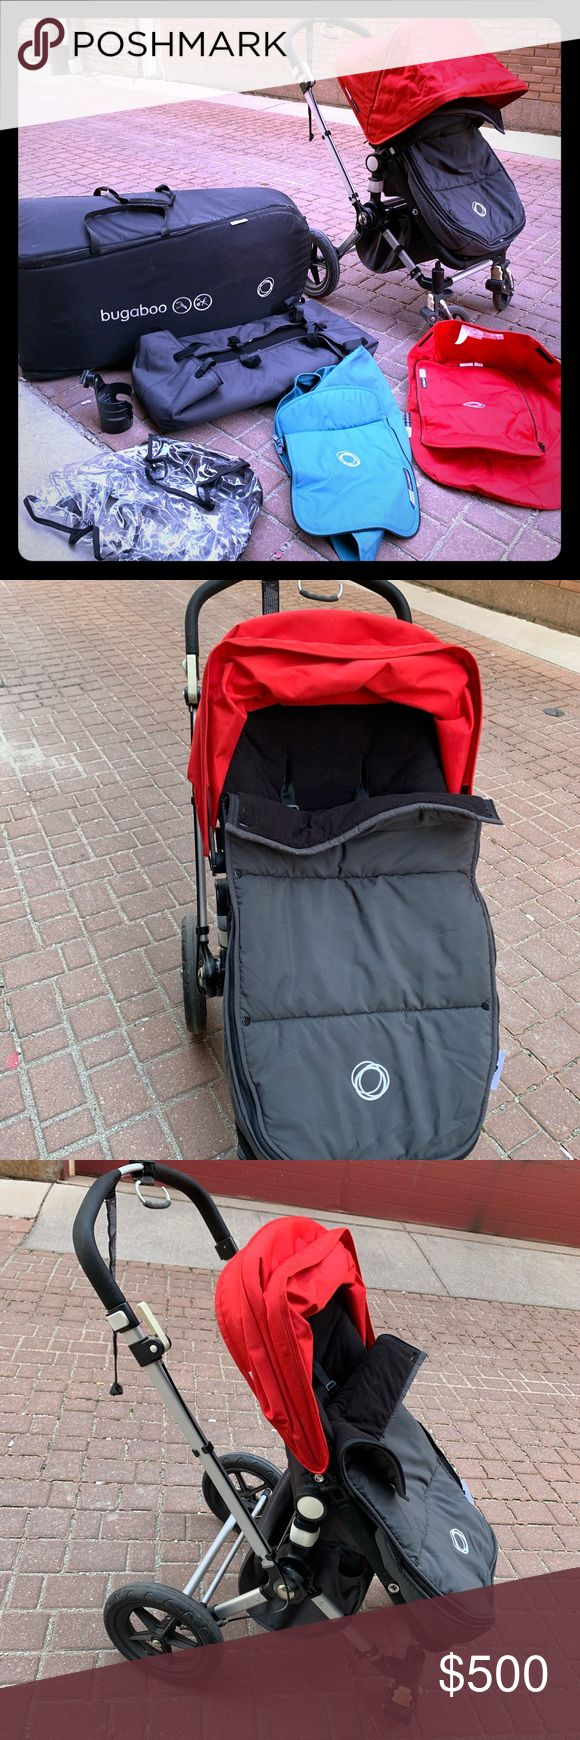 Bugaboo Cameleon Stroller + Accessories in 2020 Bugaboo